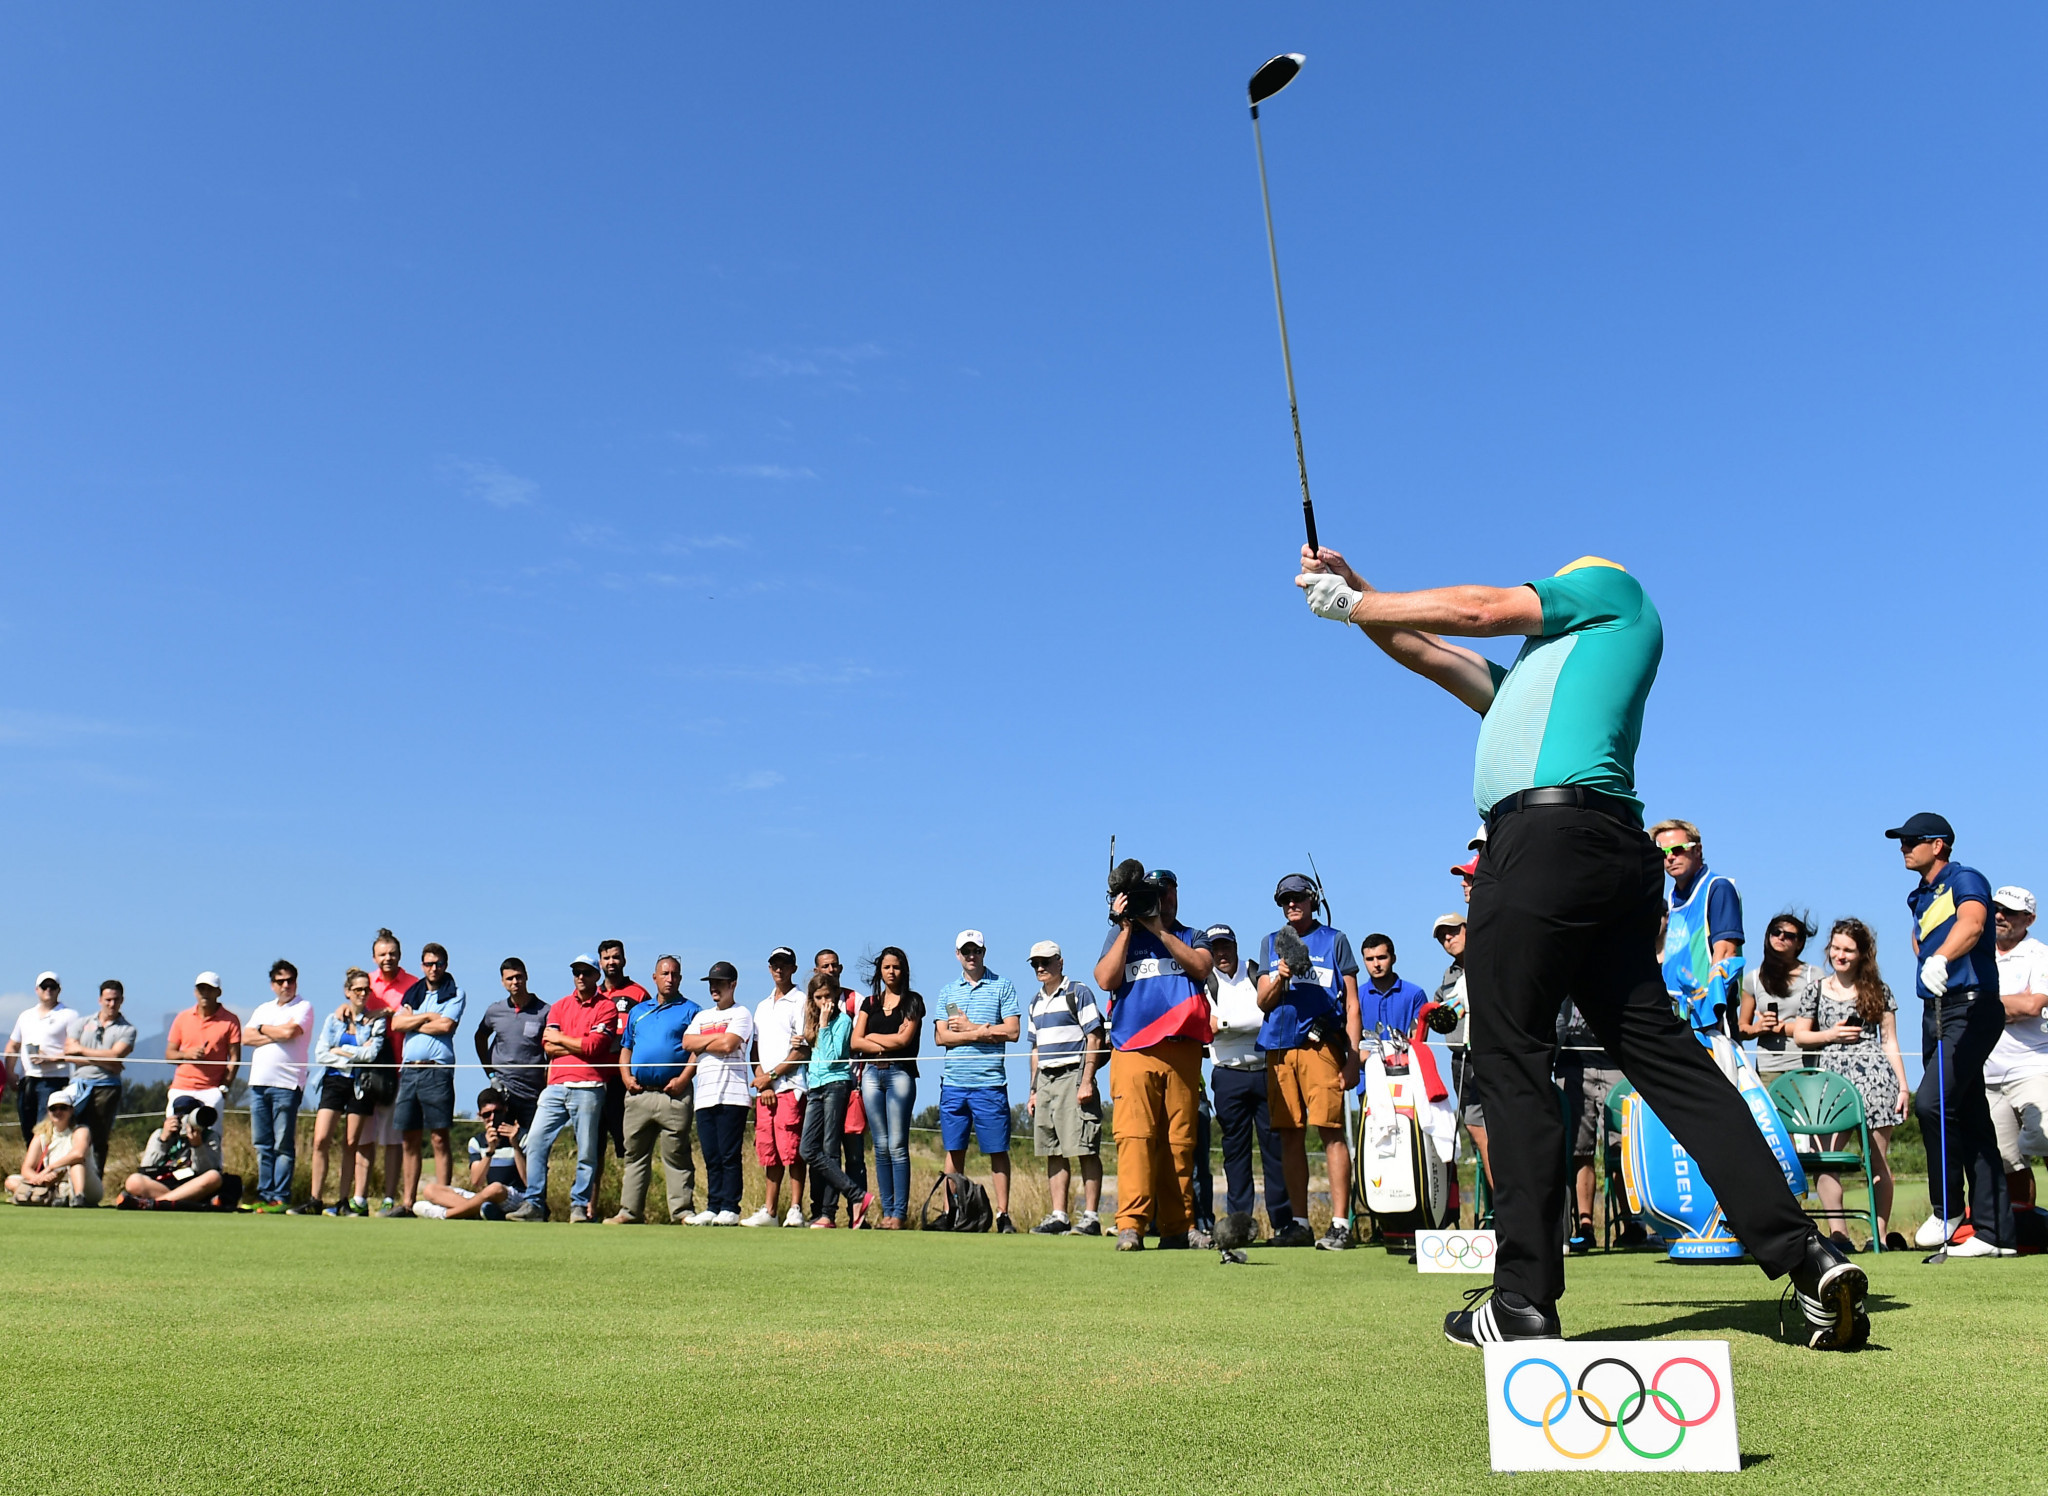 Olympic qualifying window for golf extended by one year